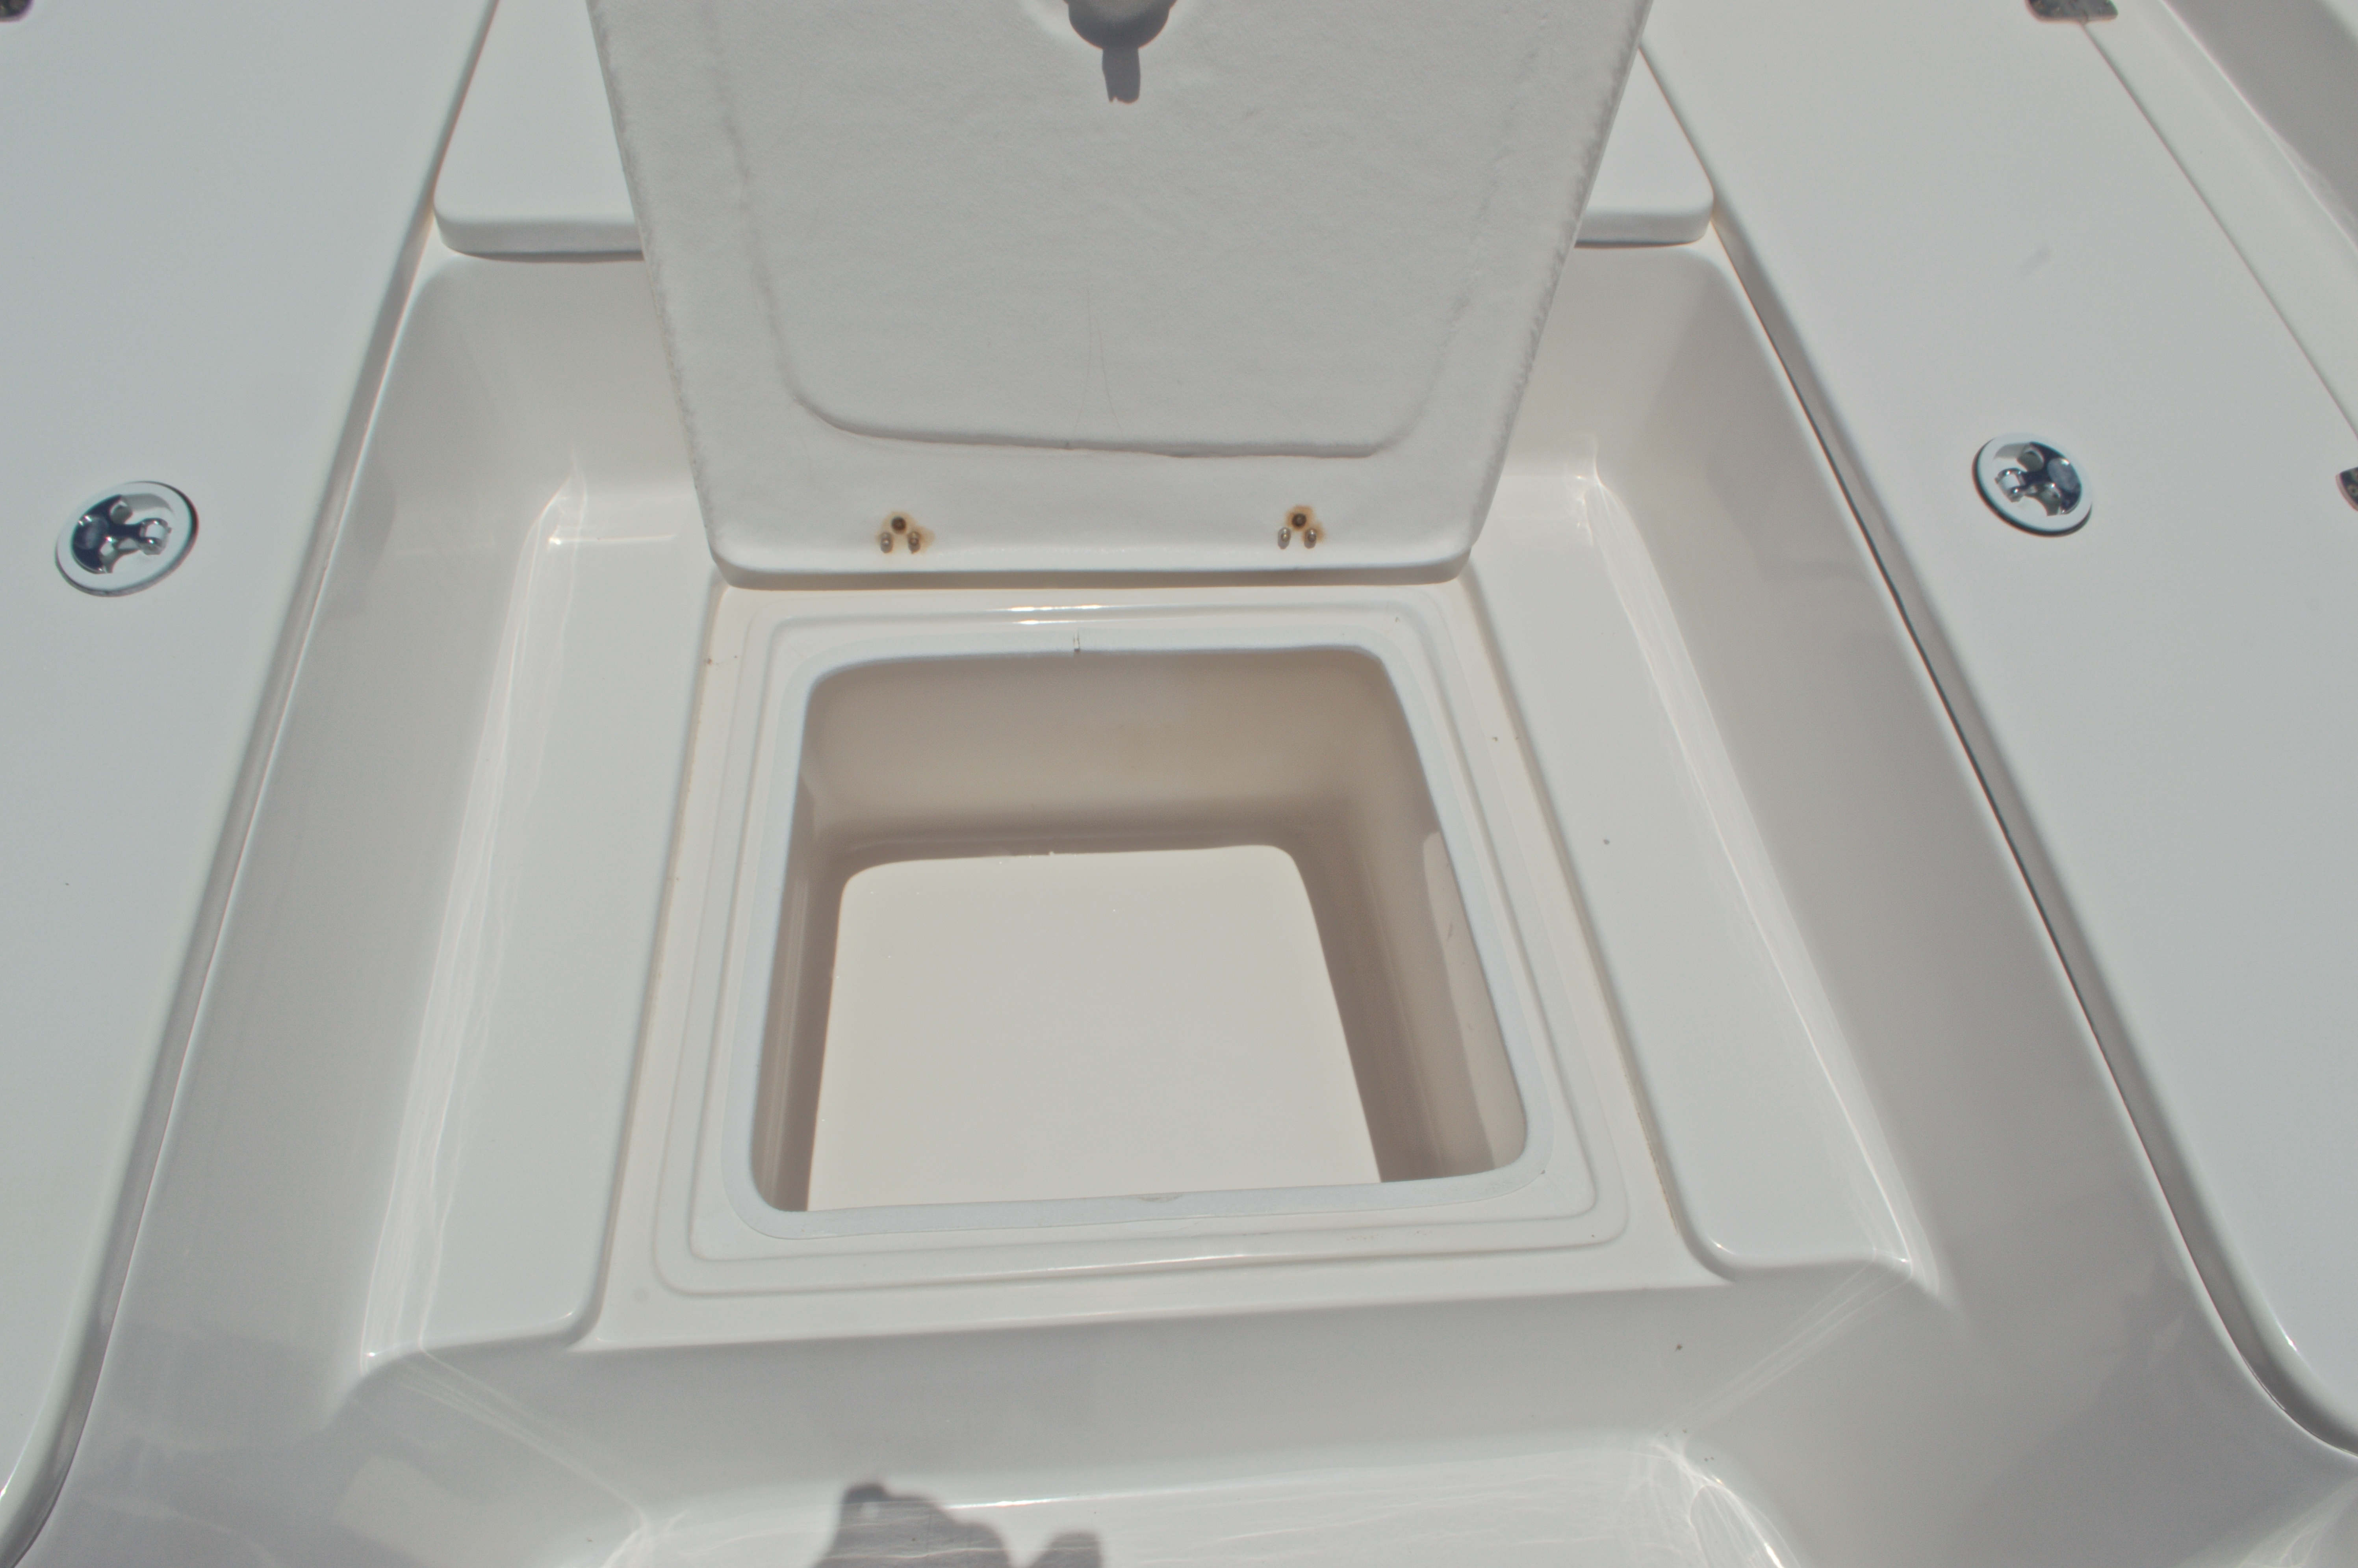 Thumbnail 50 for Used 2005 Sea Chaser 245 Bay Runner LX boat for sale in West Palm Beach, FL